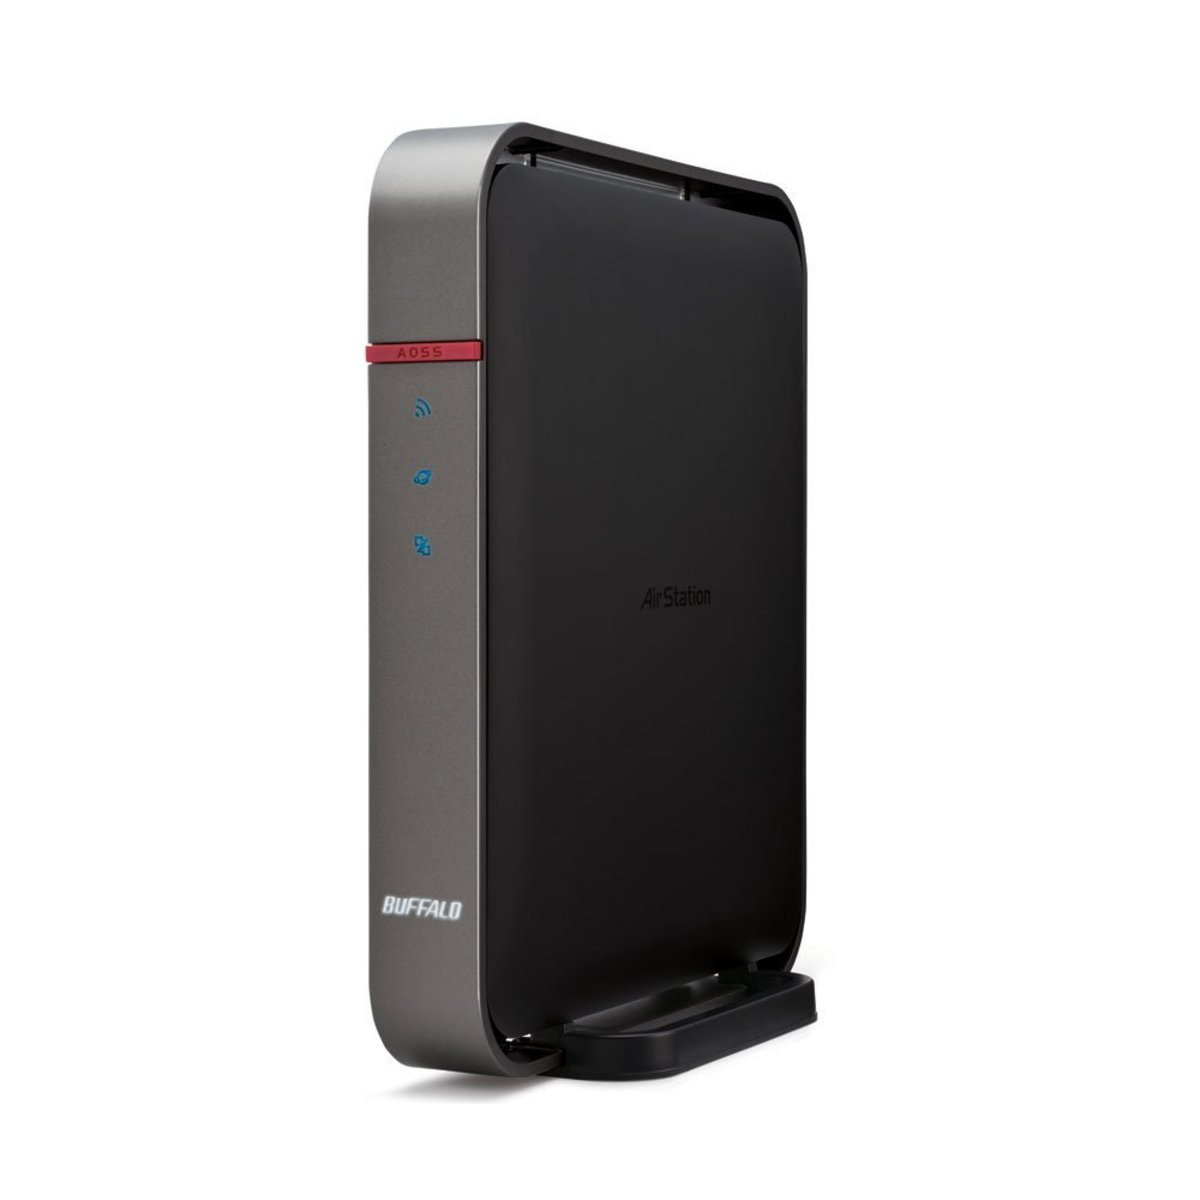 BUFFALO AirStation Extreme AC 1750 Gigabit Simultaneous Dual Band Wireless Router (WZR-1750DHP)